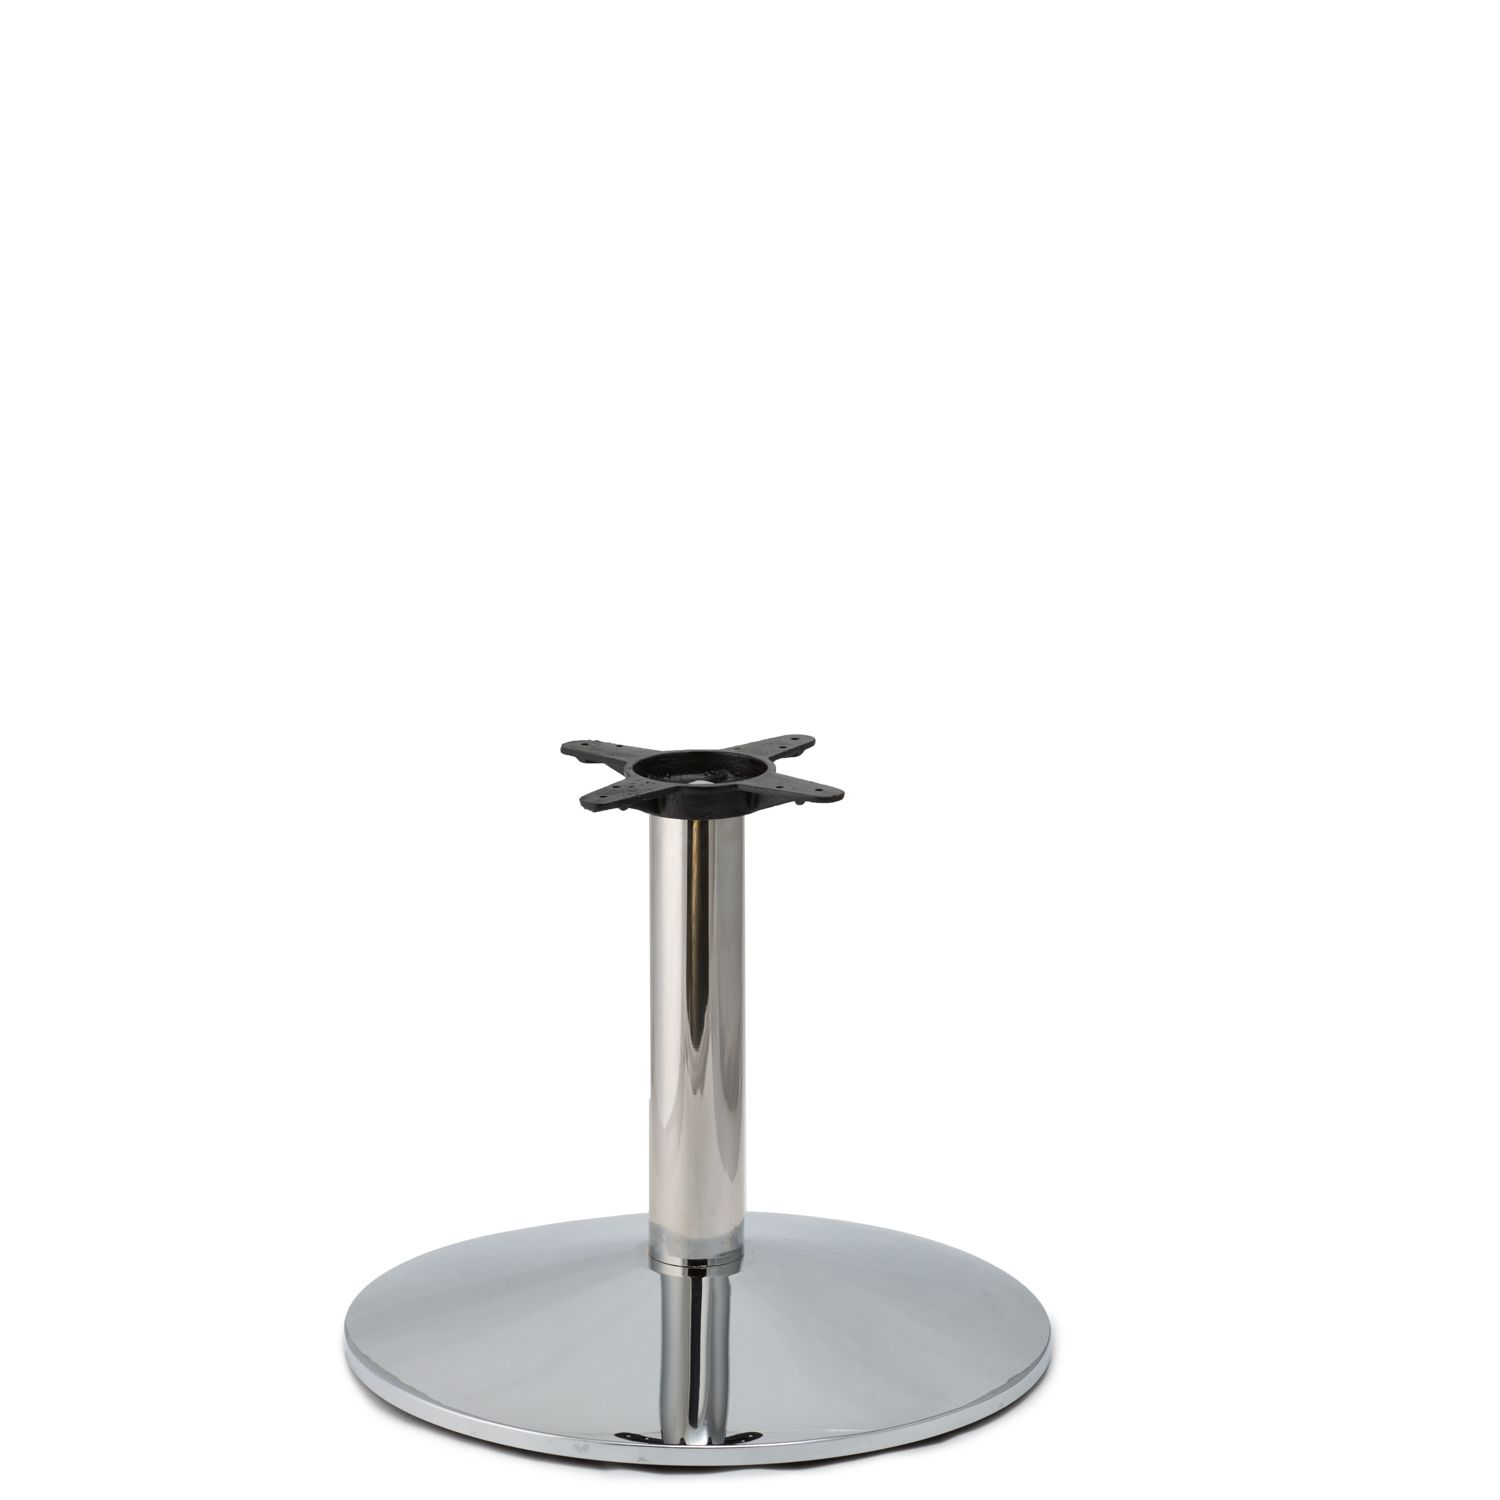 CR22 Chrome - Medium Weight Table Base - Coffee Table Height